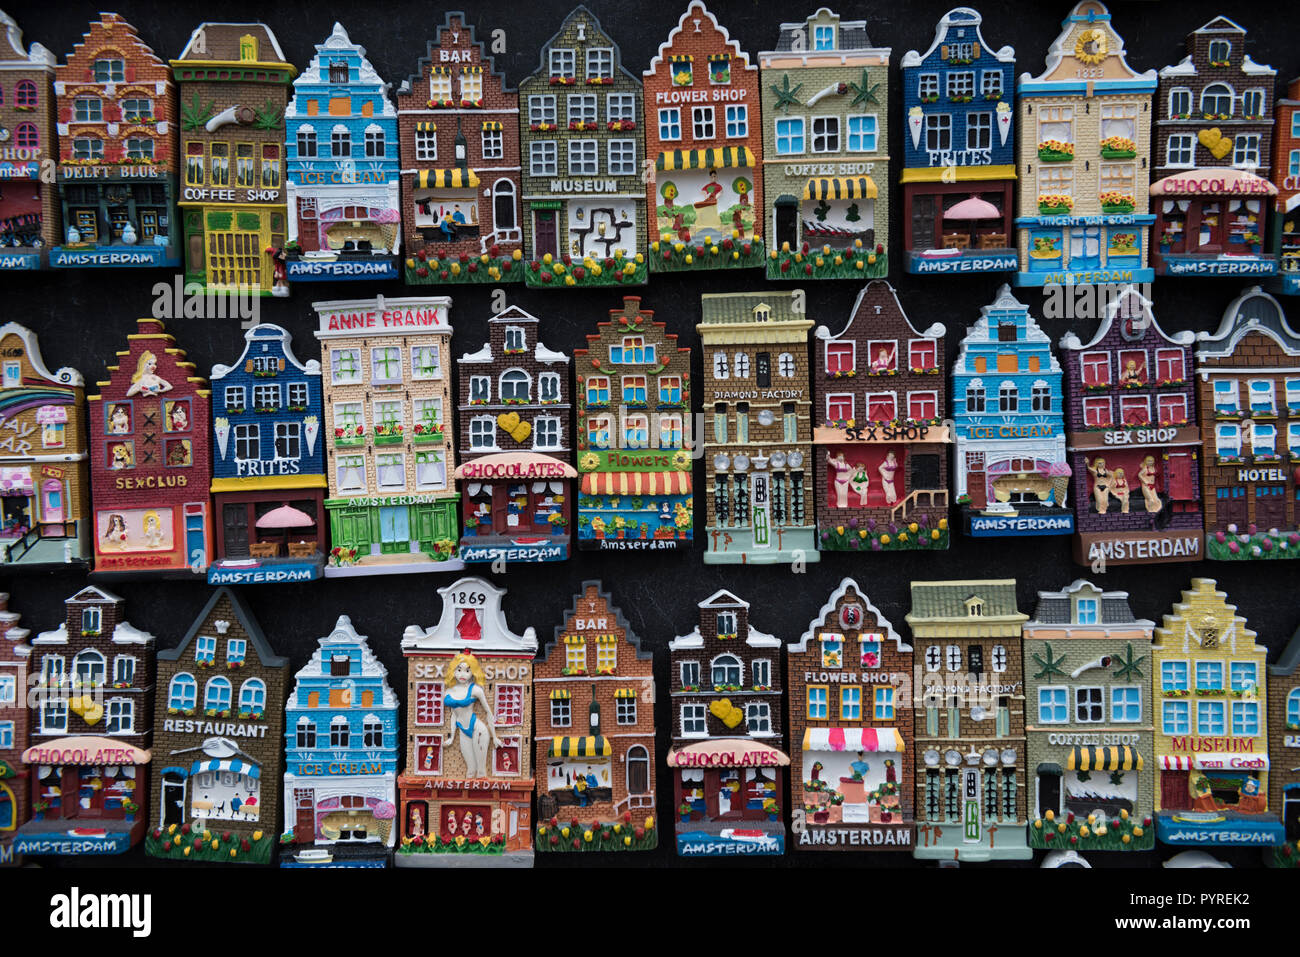 Netherlands, Amsterdam, Flower Market (Bloemenmarkt), fridge magnets depicting facades of Dutch houses - Stock Image